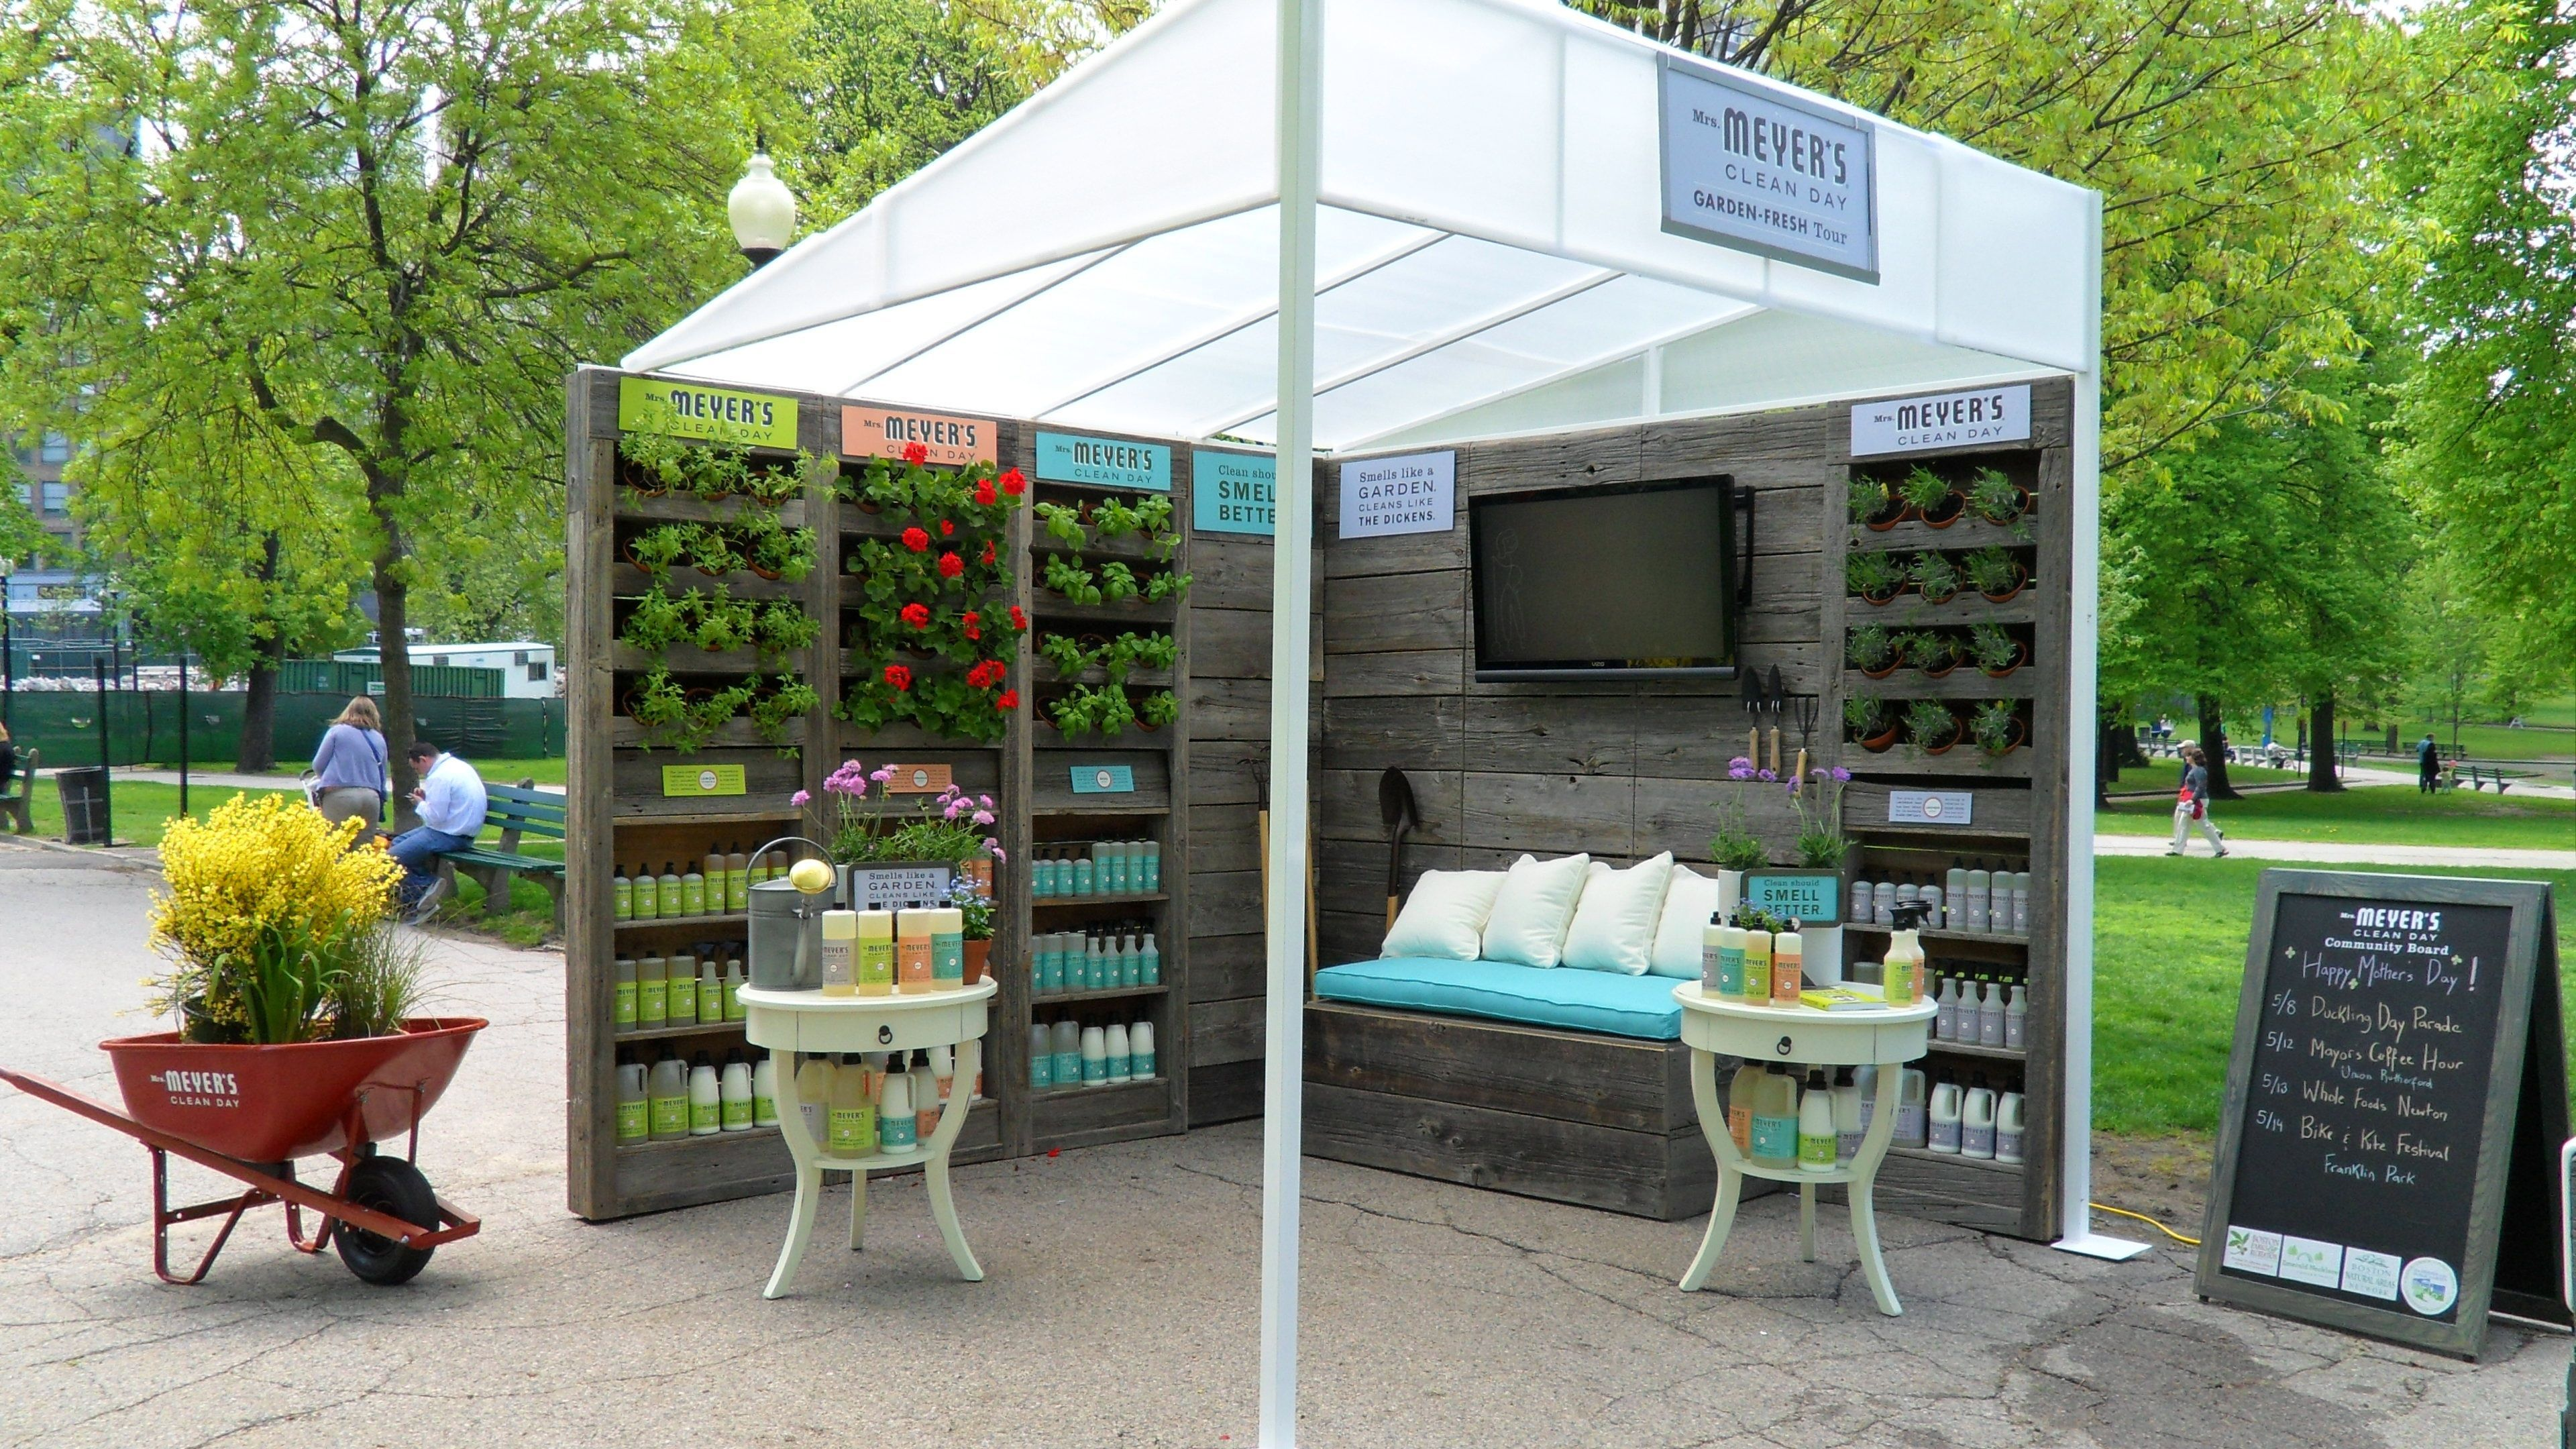 Related Image Carpentry Diy Tradeshow Booth Outdoor Market